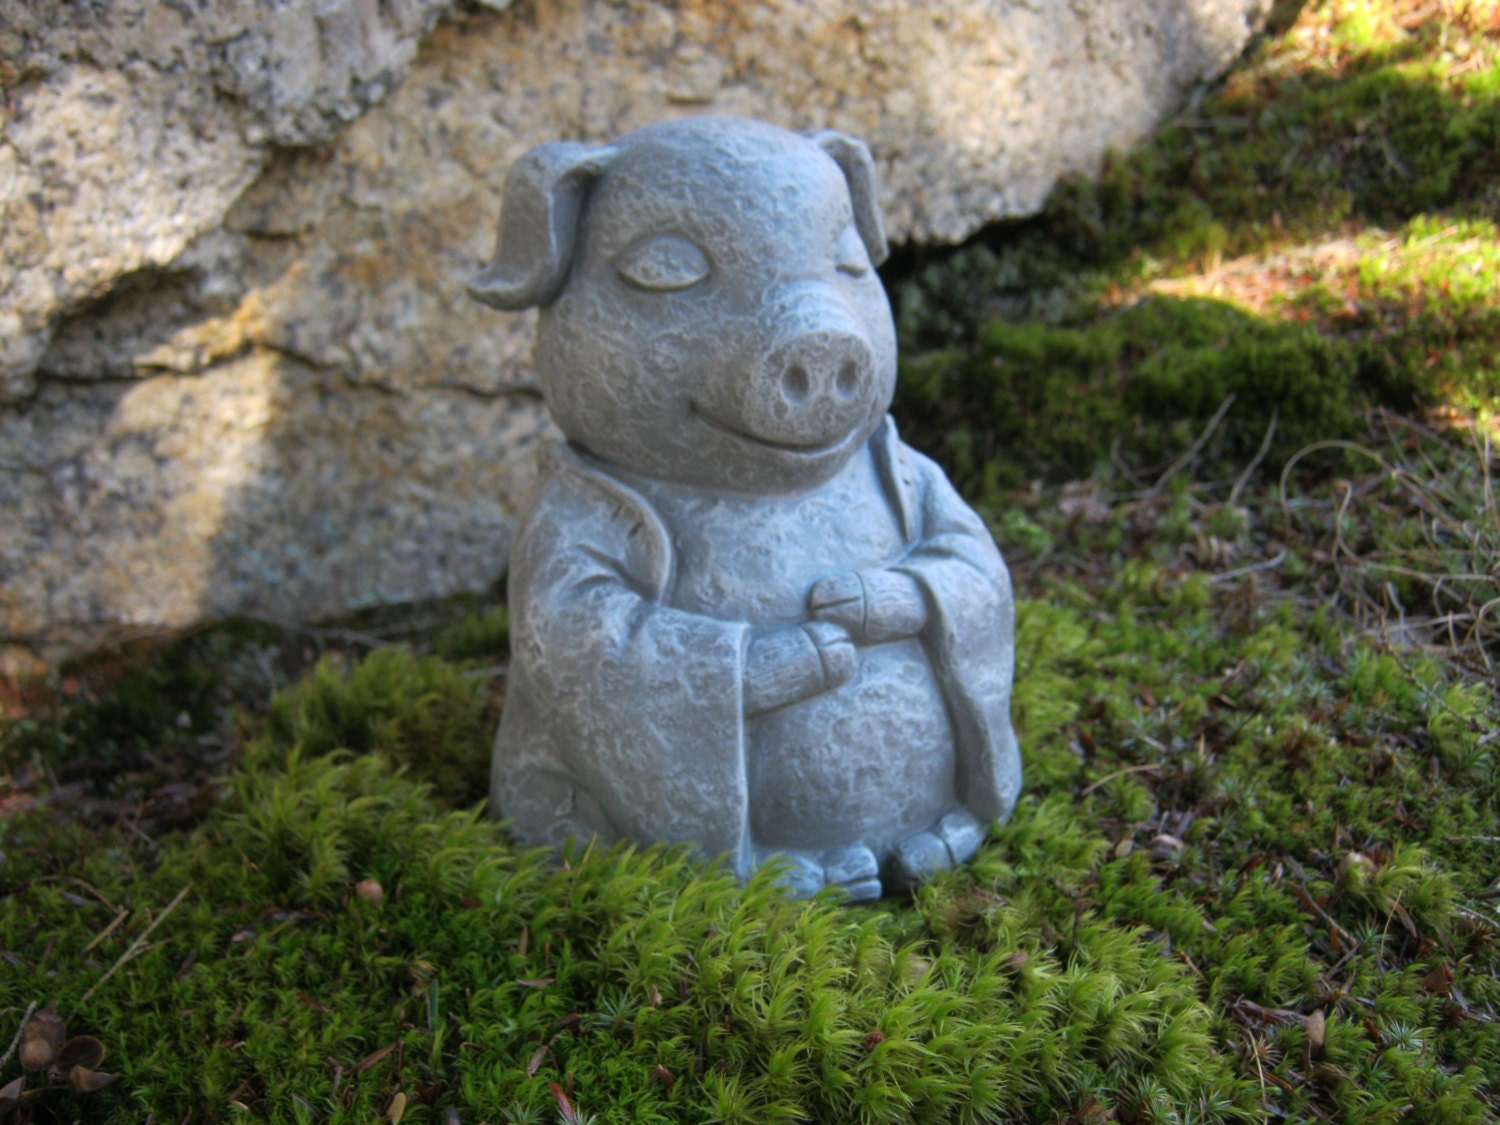 Pig lawn ornament -  Zoom